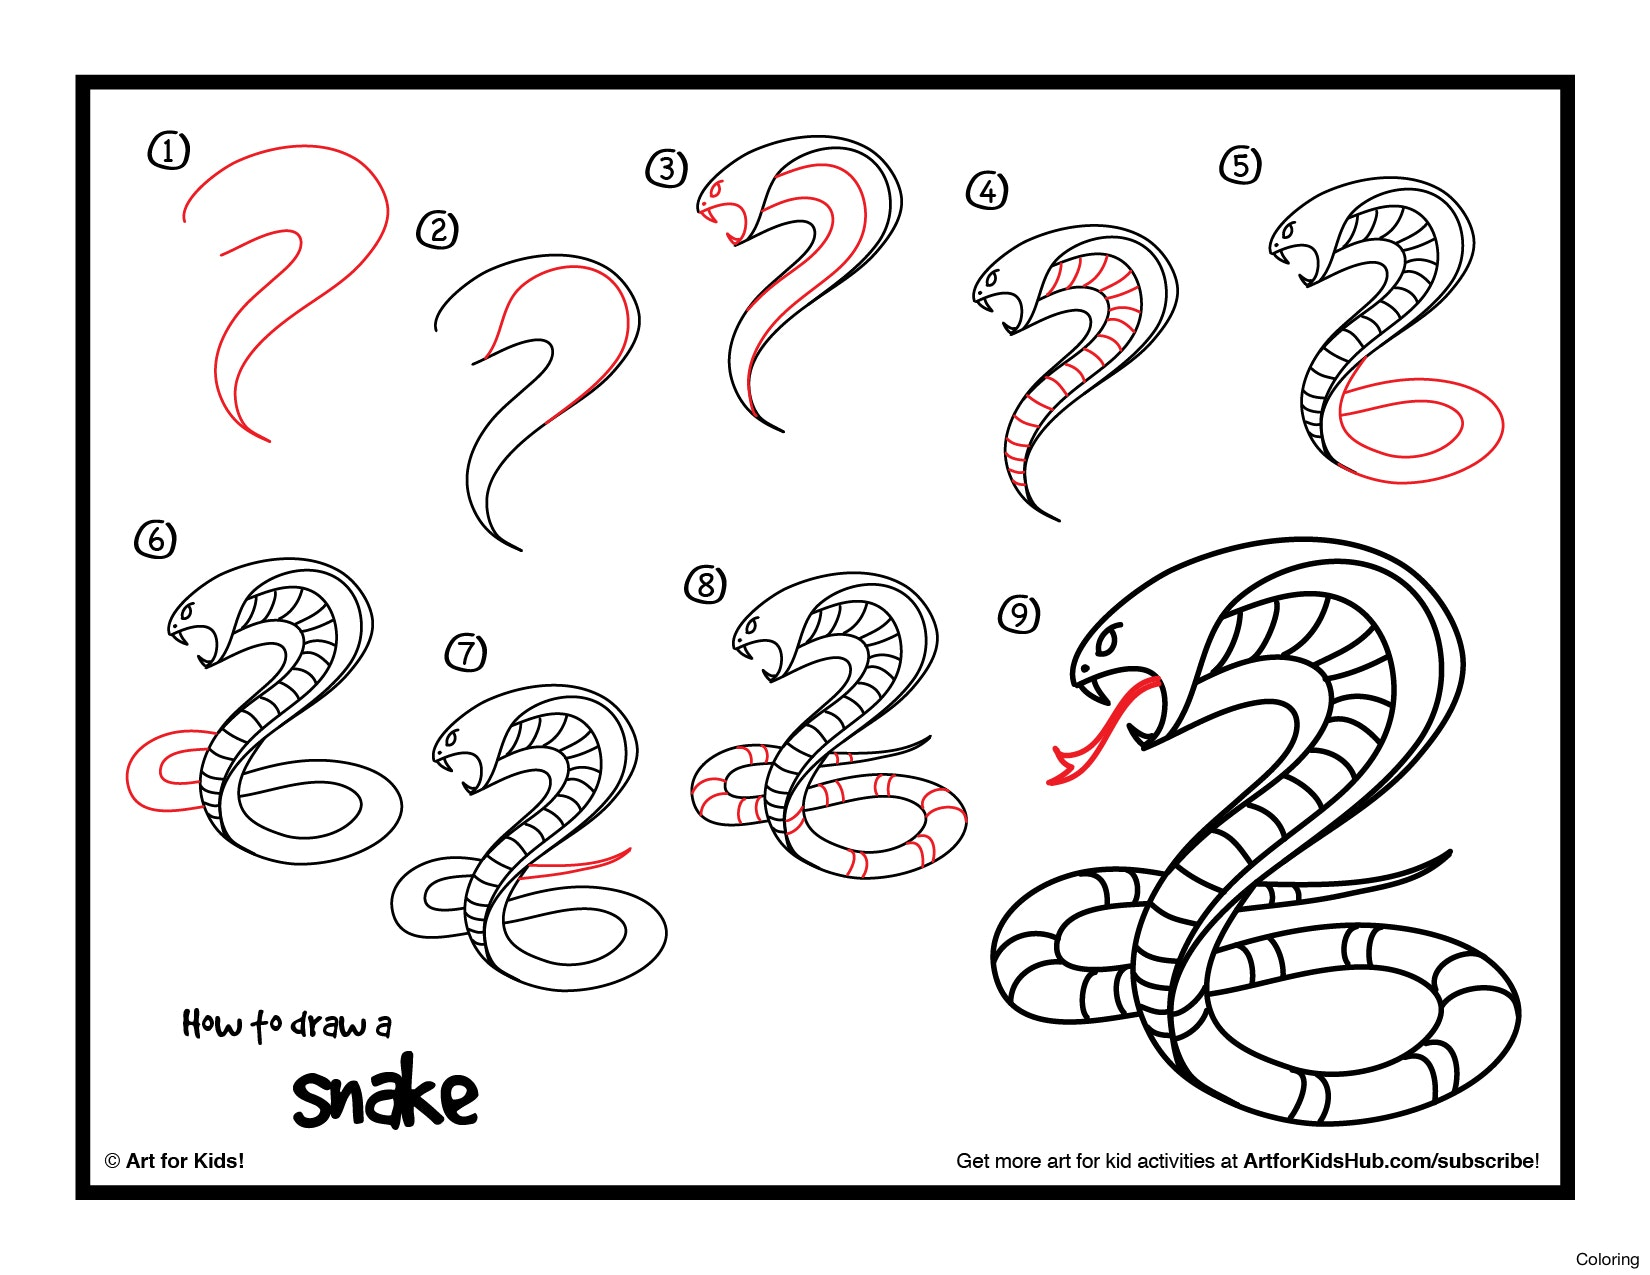 Snake 3d Drawing At Free For Personal Use Skeleton Top Diagram Images Pinterest 1650x1275 Gopher Sketch How To Draw Coloring Facial 10f Cobra